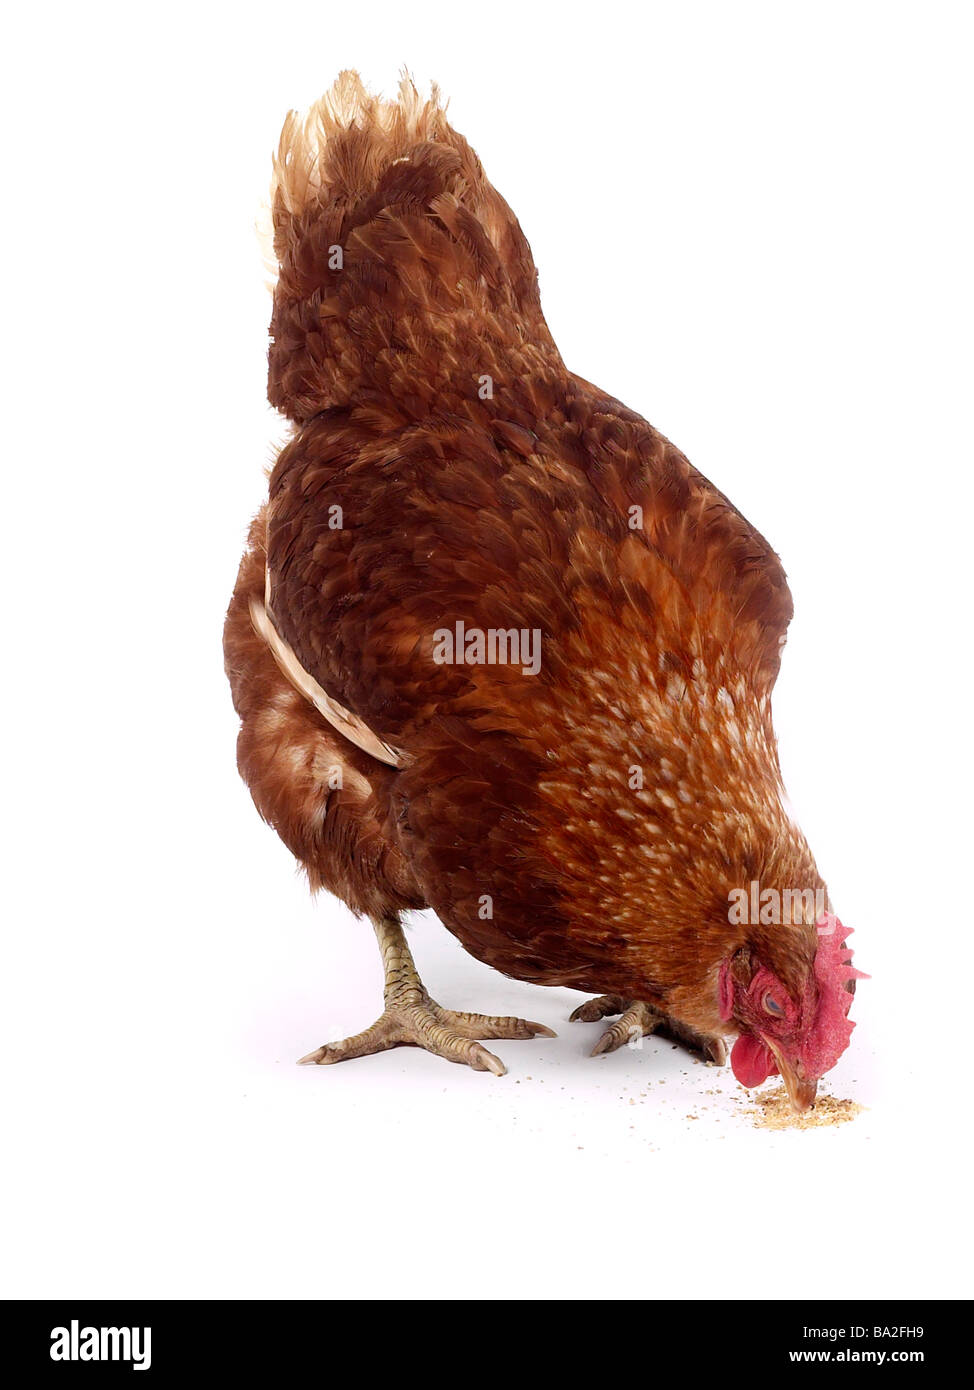 A chicken eating chickenfeed. - Stock Image